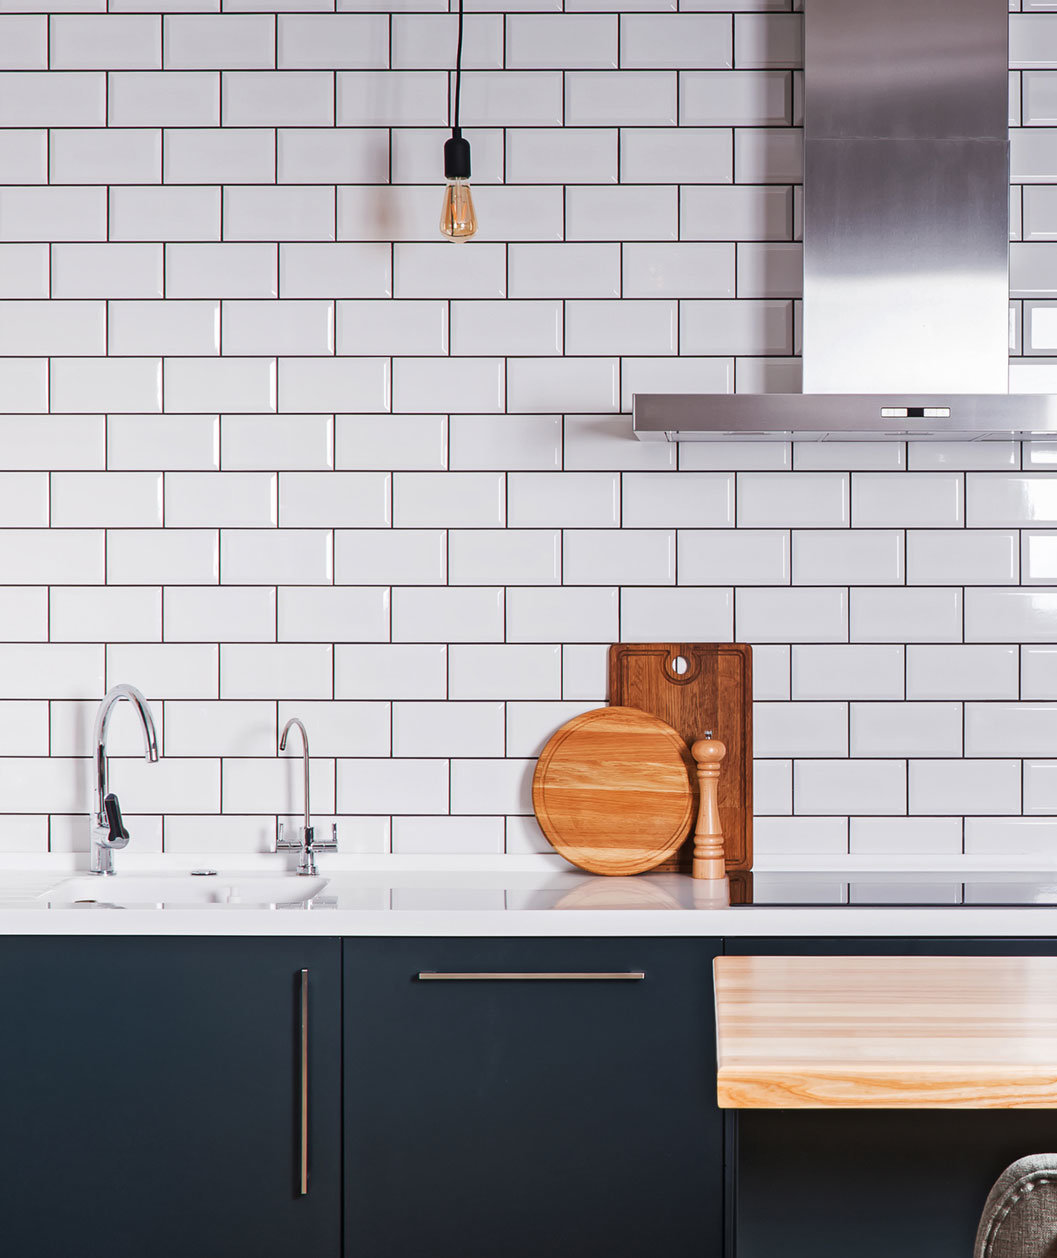 Backsplash Tile Ideas Collection 12 Kitchen Backsplash Ideas You Need to See Right Now